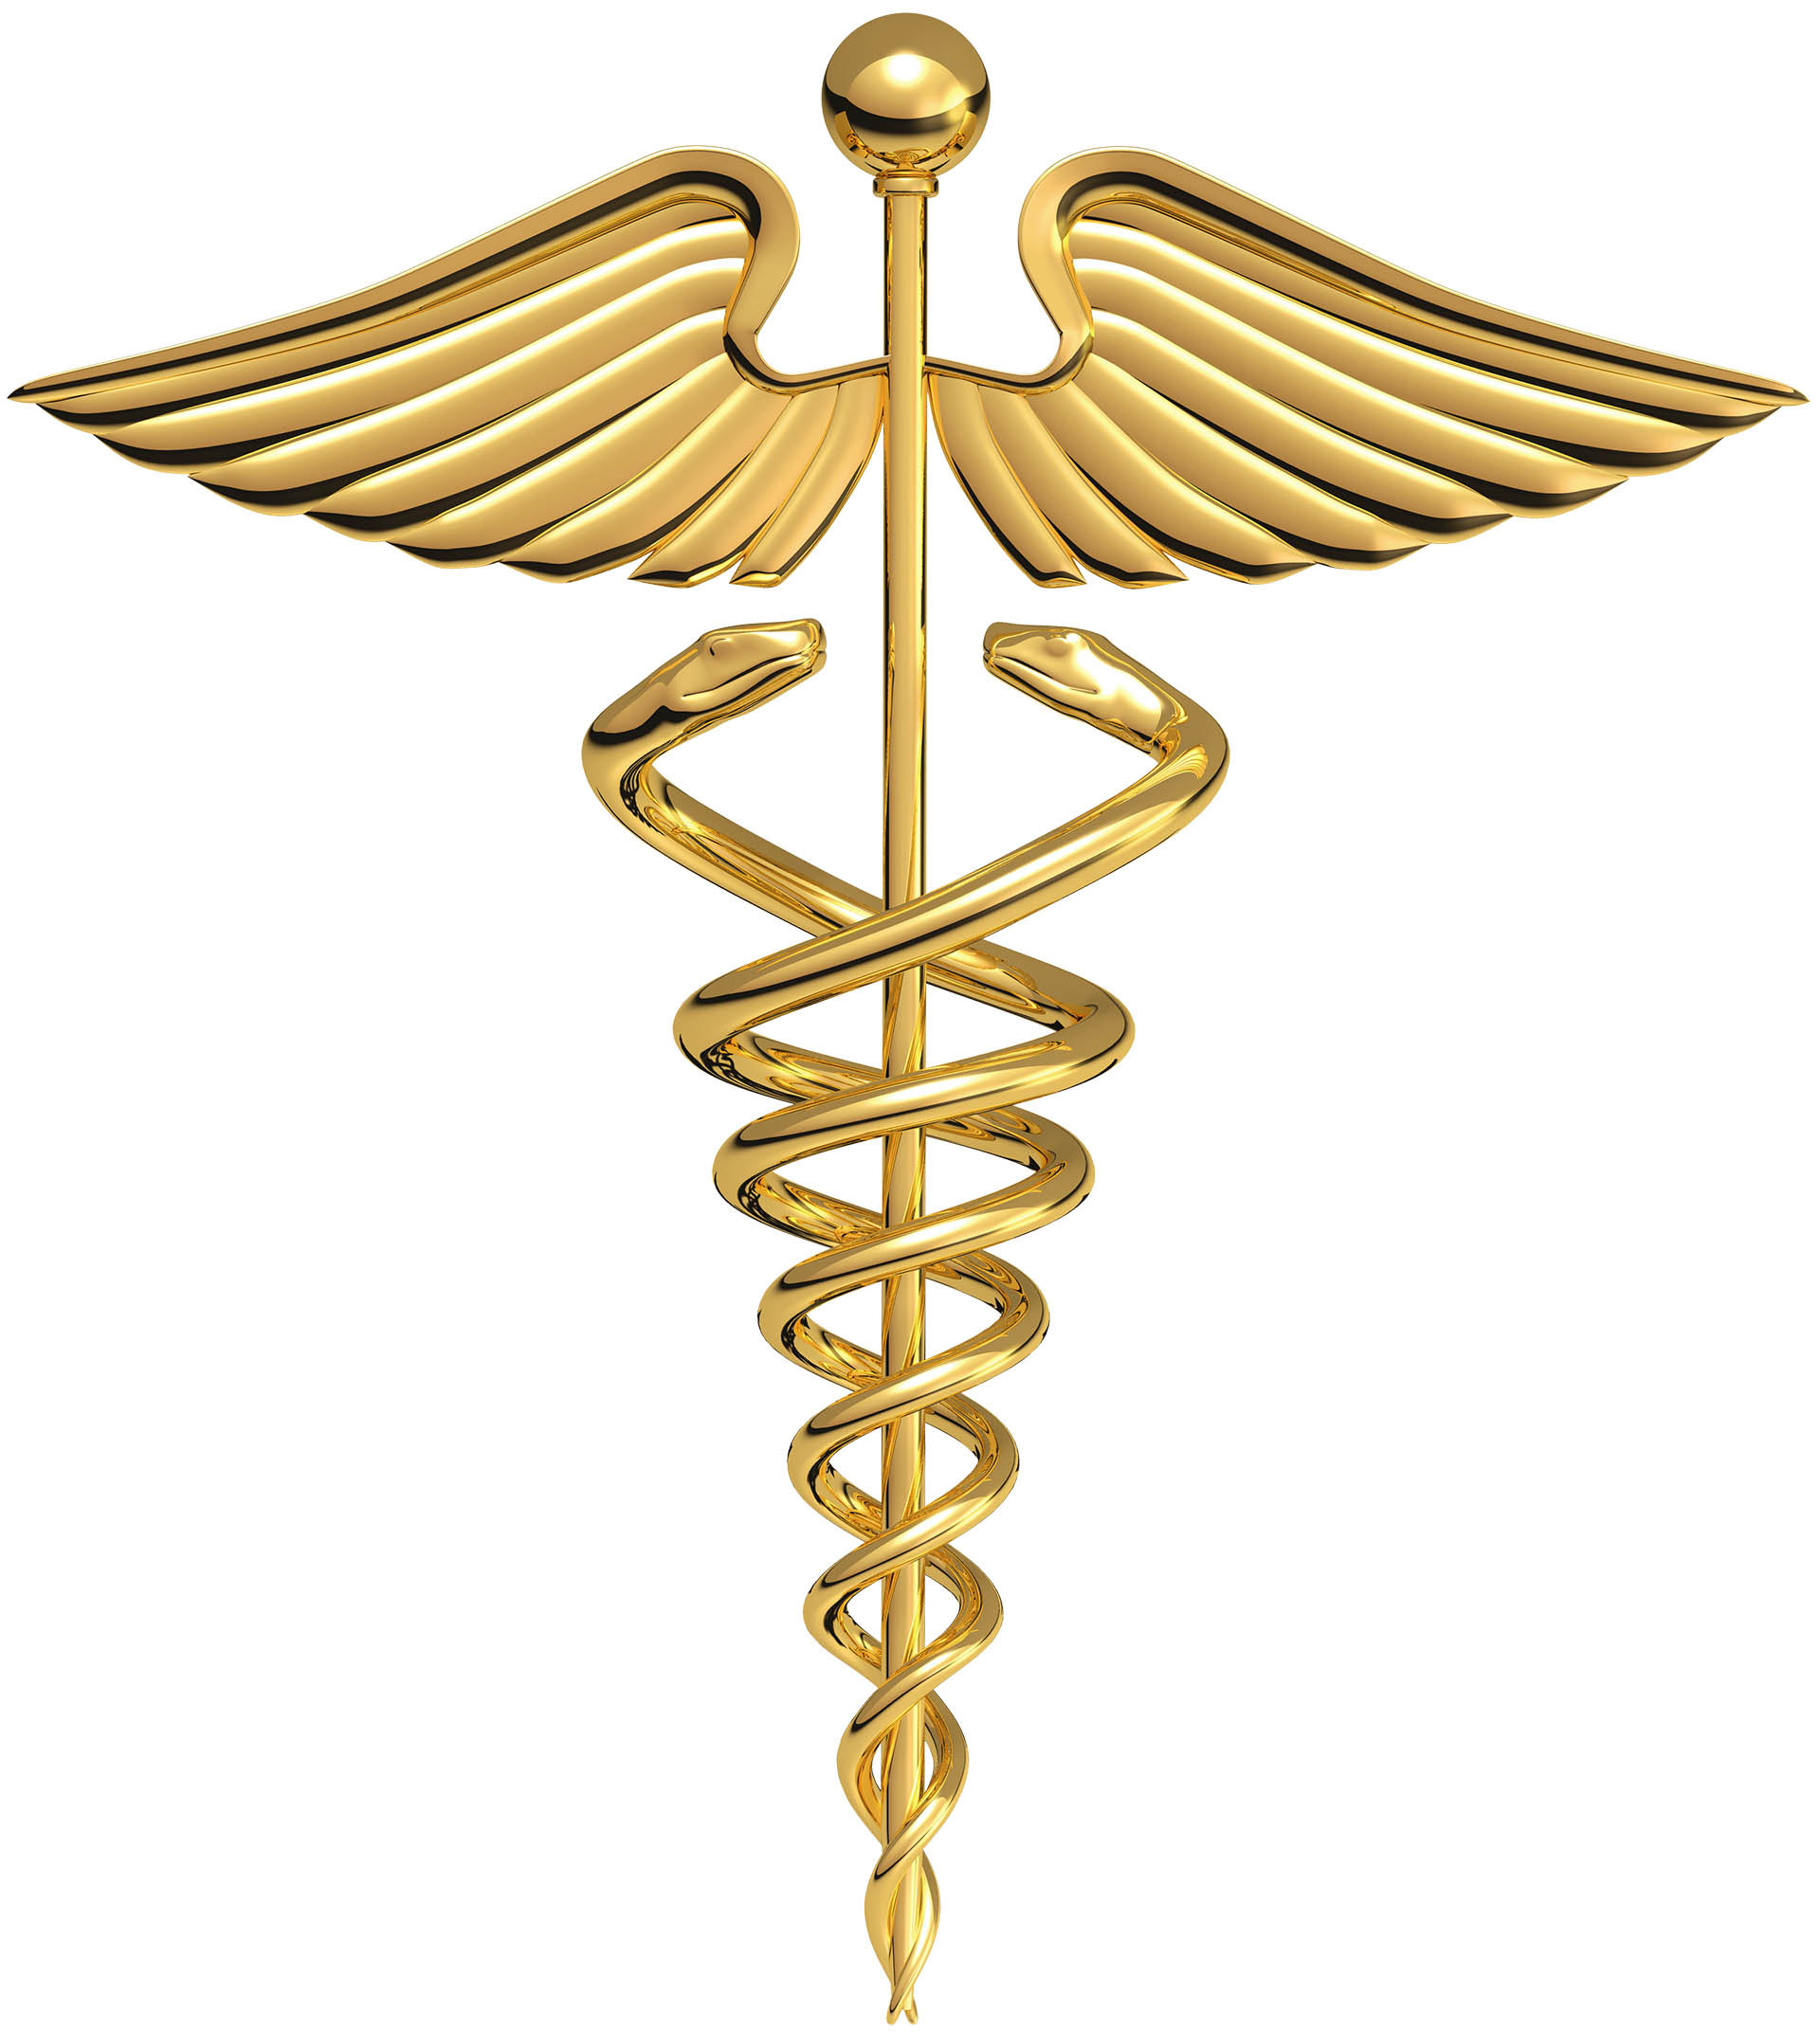 Caduceus - HEALTH - Messenger of the gods - COMPASSION - MERCY - BENEVOLENCE - BE HUMANE - BE KIND - BE GENTLE - DO NO HARM - FEAR NOT - BE NOT AFRAID - CAUSE NO PAIN - BE AS PAINLESS AS POSSIBLE - CAUSE NO FEAR - DO NOT BE SCARY - USE BIRTH CONTROL - PERMIT DIVORCE - DO NOT PUNISH - DO NOT MAKE THREATS - DO NOT BE COERCIVE - BE PERMISSIVE - BE TOLERANT - EMPATHY IS CRITICAL - RESPECT FOR THE DIGNITY OF ALL HUMAN BEINGS IS CRITICAL - FREE UNIVERSAL HEALTH CARE - FREE UNIVERSAL EDUCATION - UNIVERSAL HOME OWNERSHIP